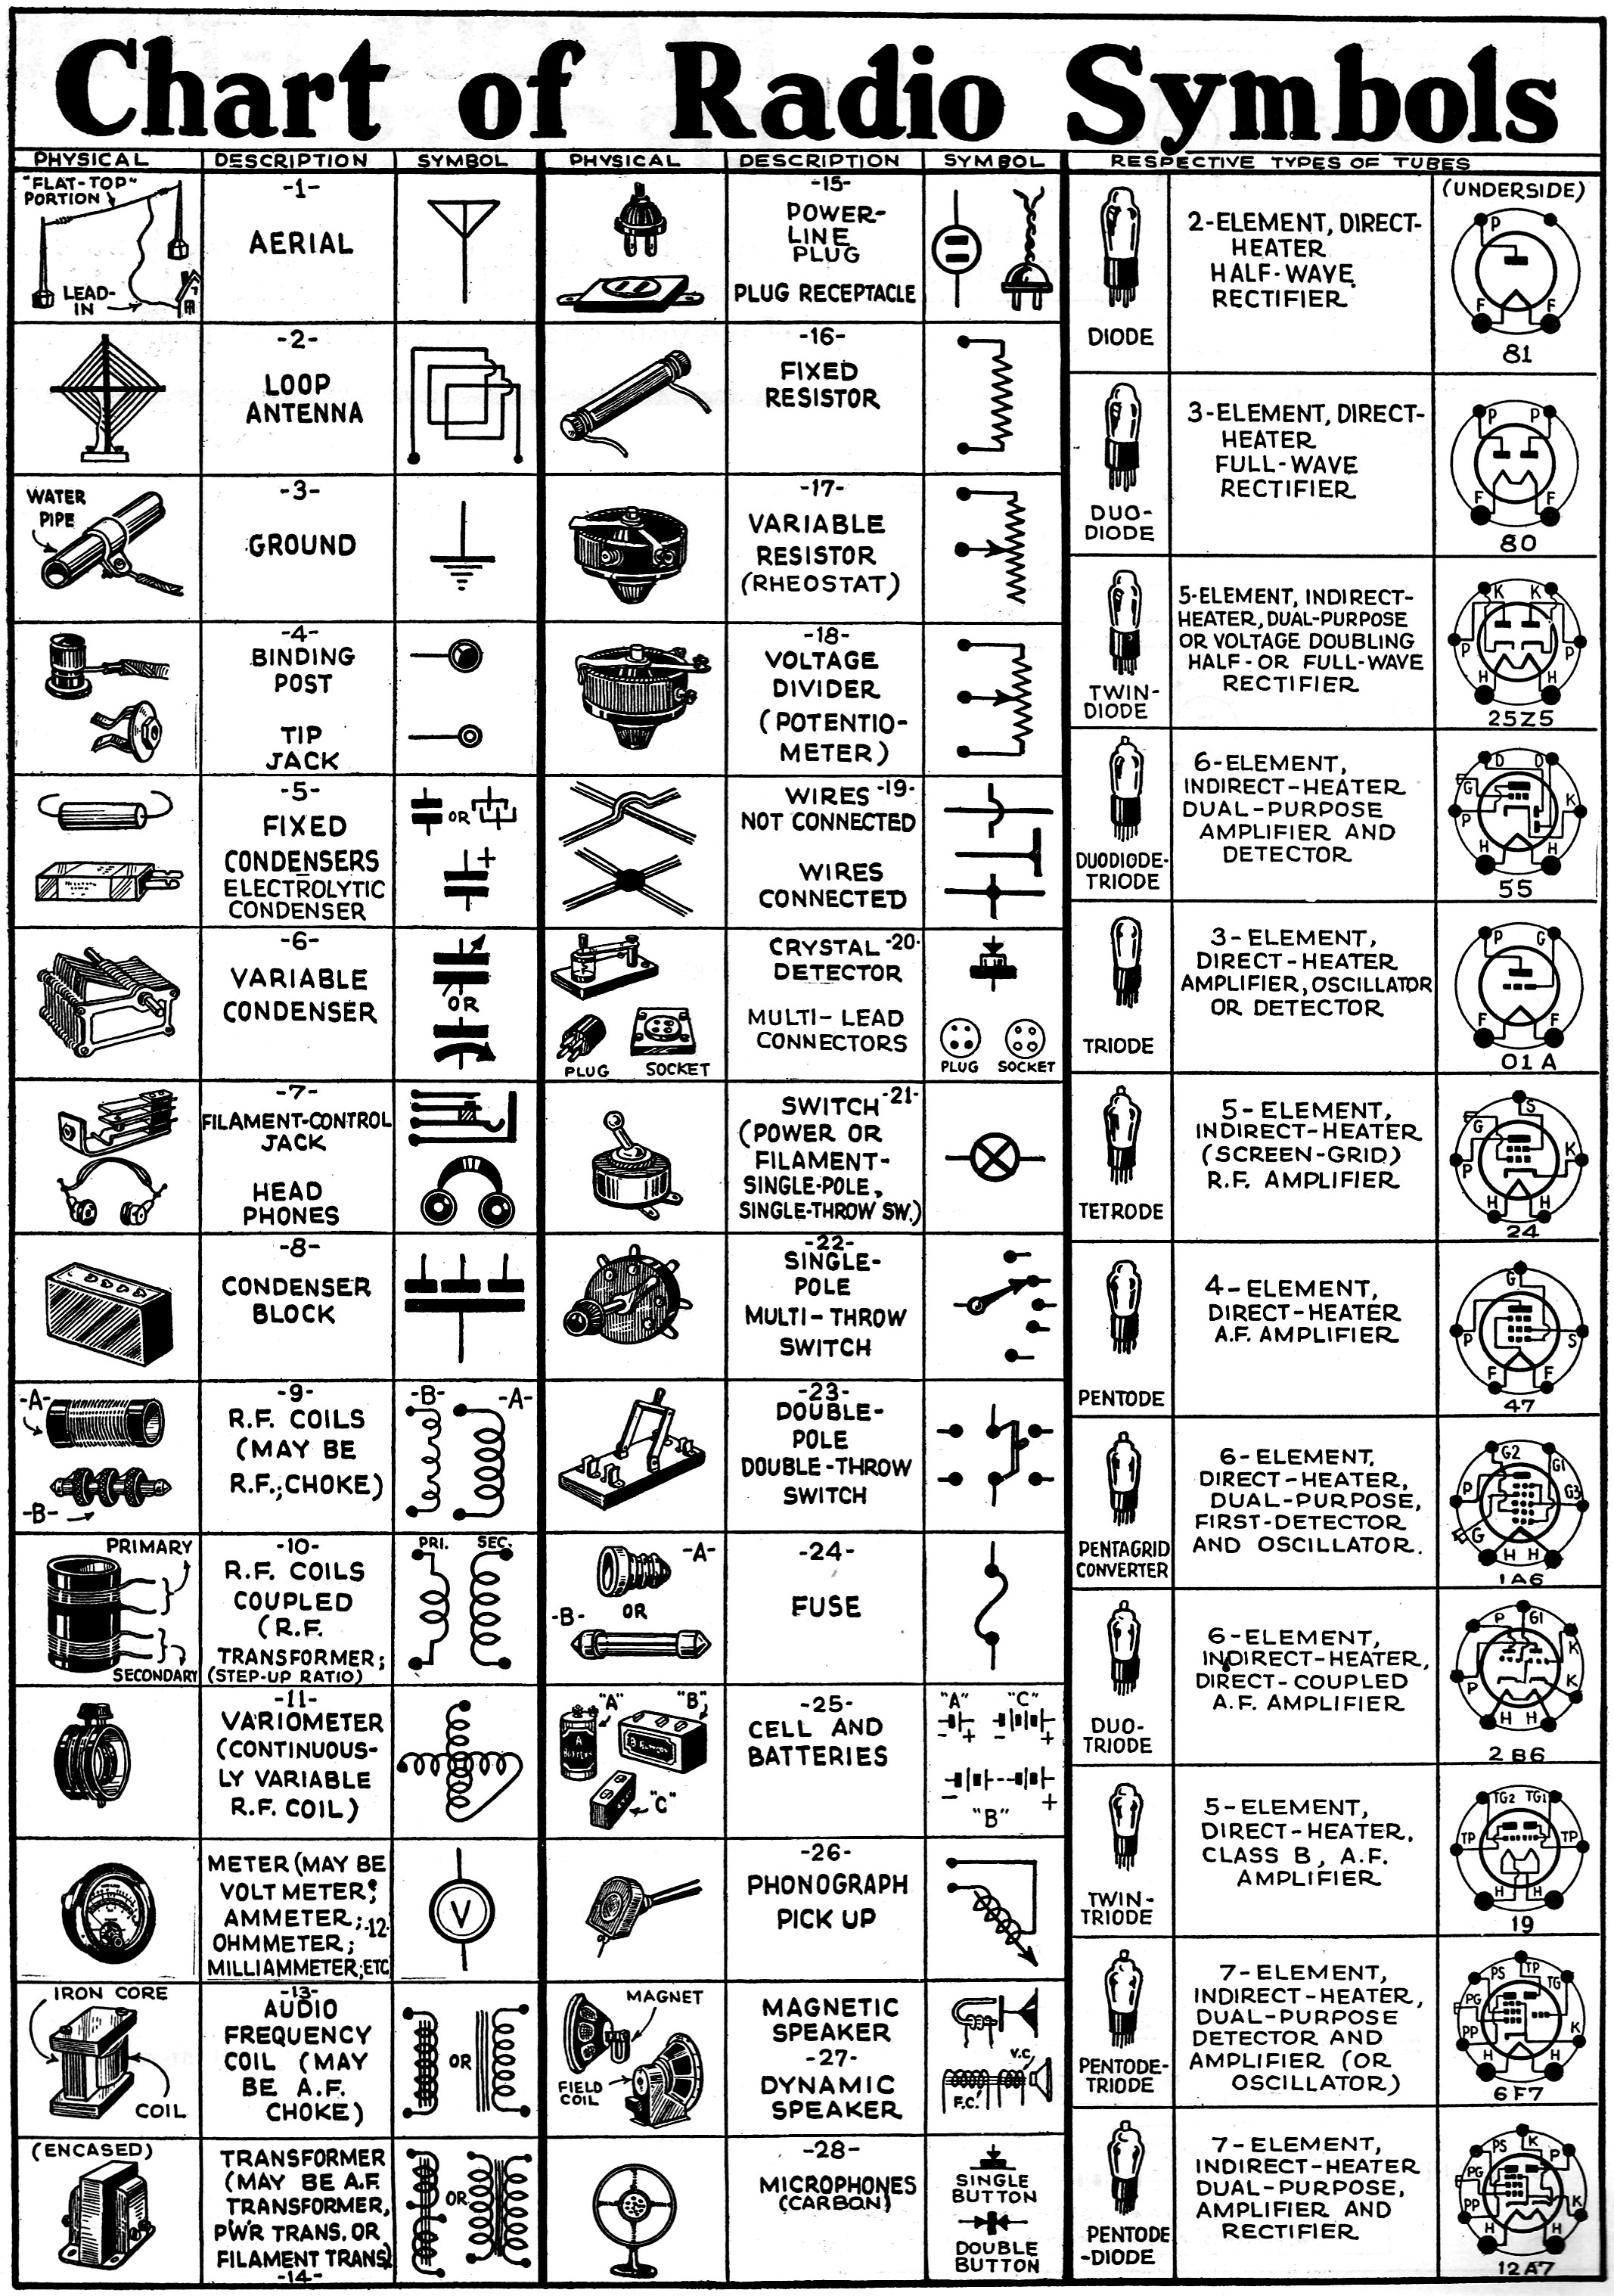 All About Schematic Symbols Wjoe Radio Electronics Circuits Standardized Wiring Diagram Chart Of March 1935 Craft Rf Cafe